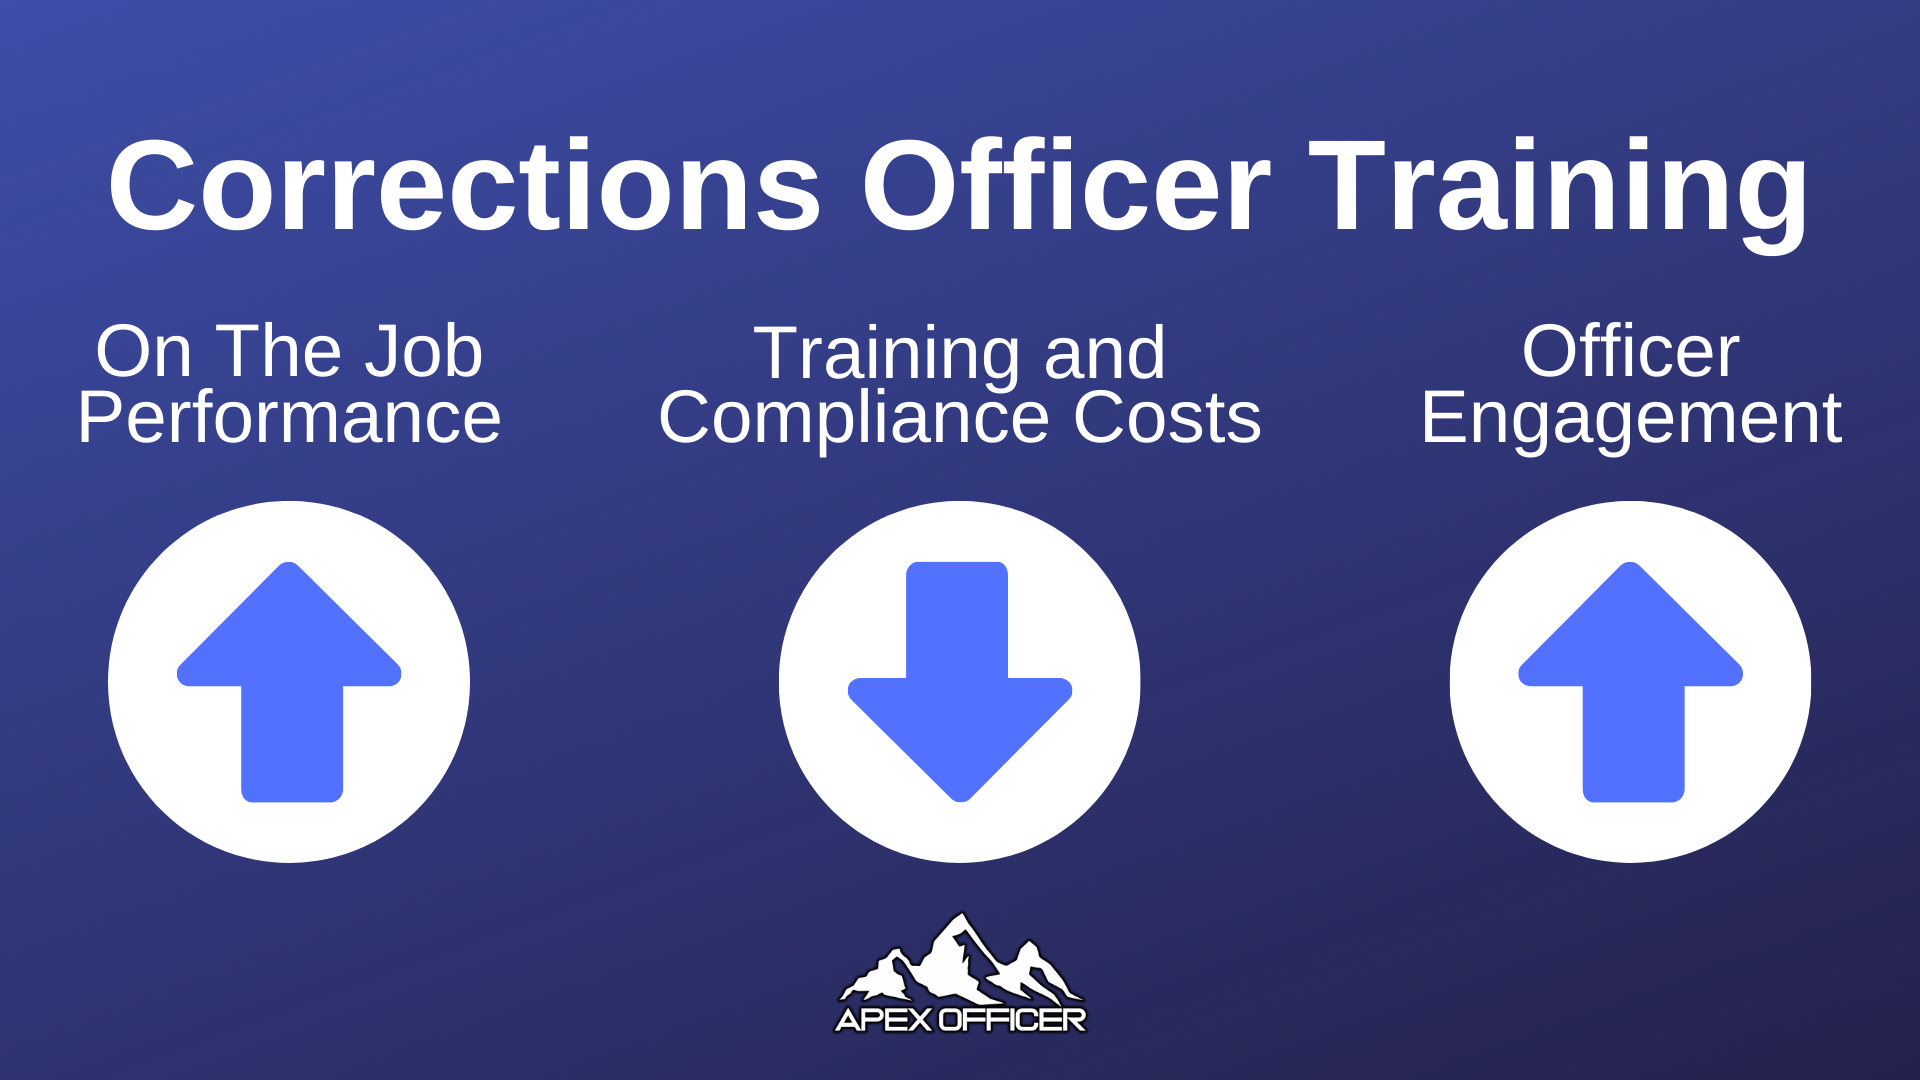 Apex Officer Corrections Officer Training Simulator Advantages